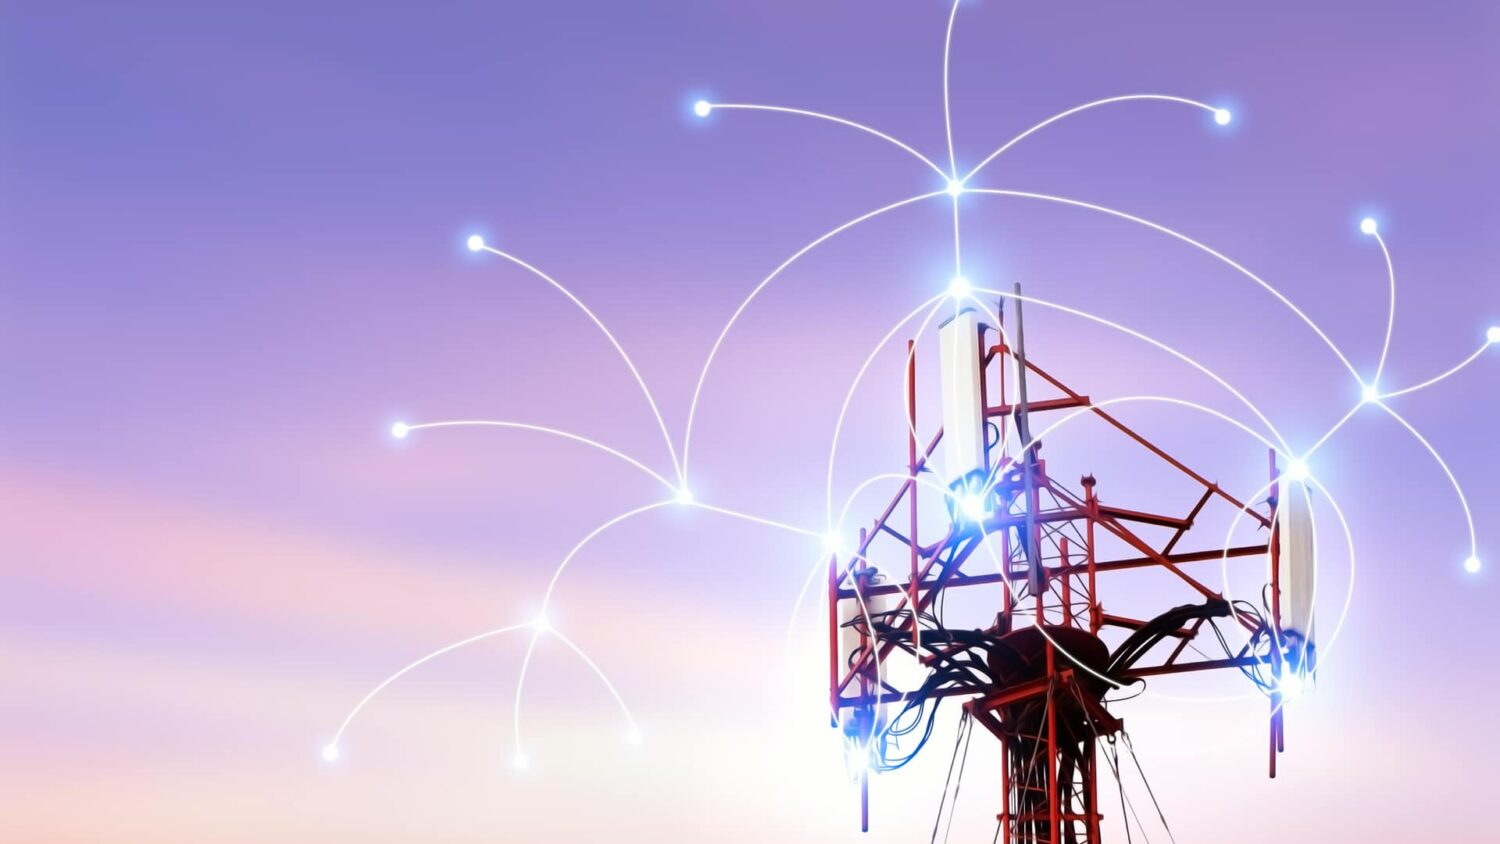 Apollo's deal for Parallel Infrastructure puts money behind build-to-suit 5G cell towers